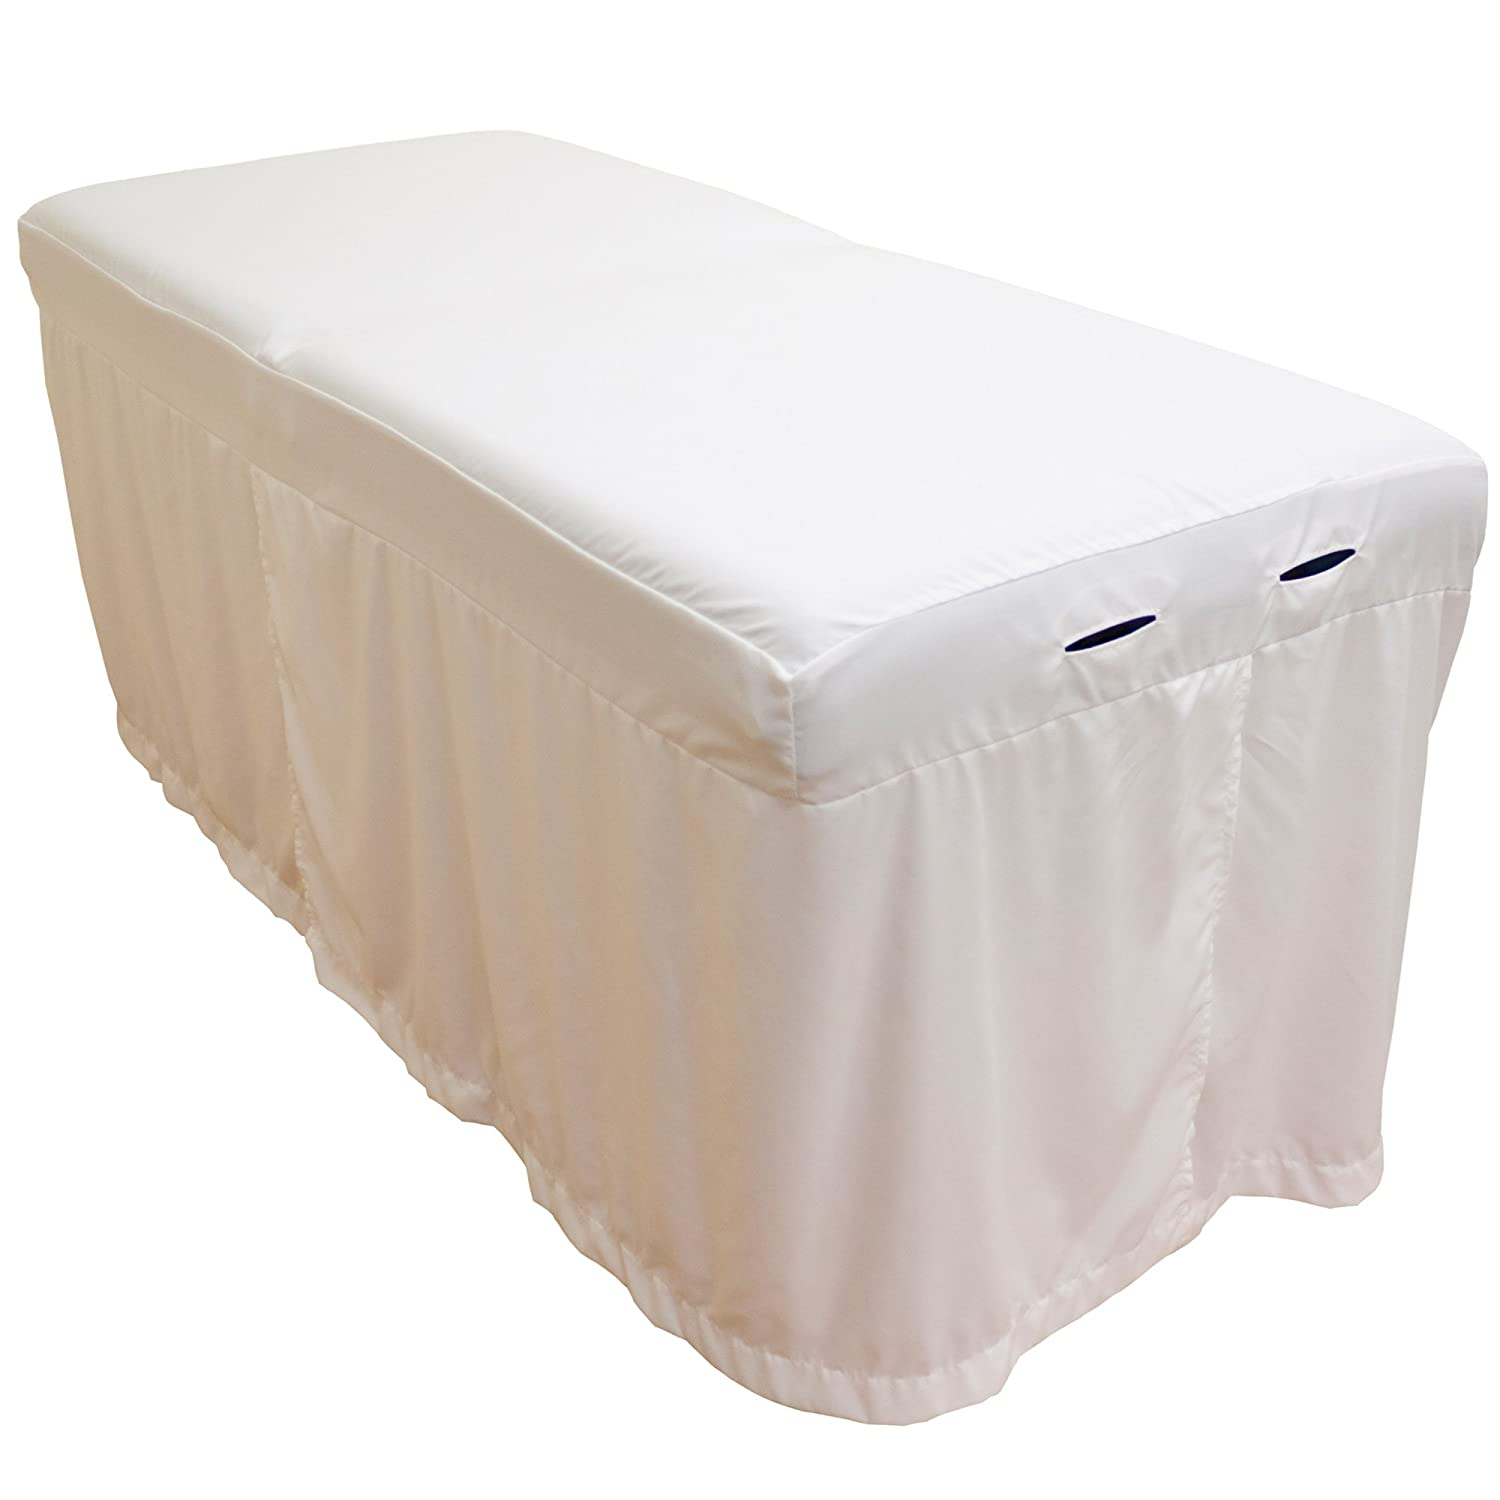 Microfiber Massage Table Skirt - Mirage Gray Body Linen